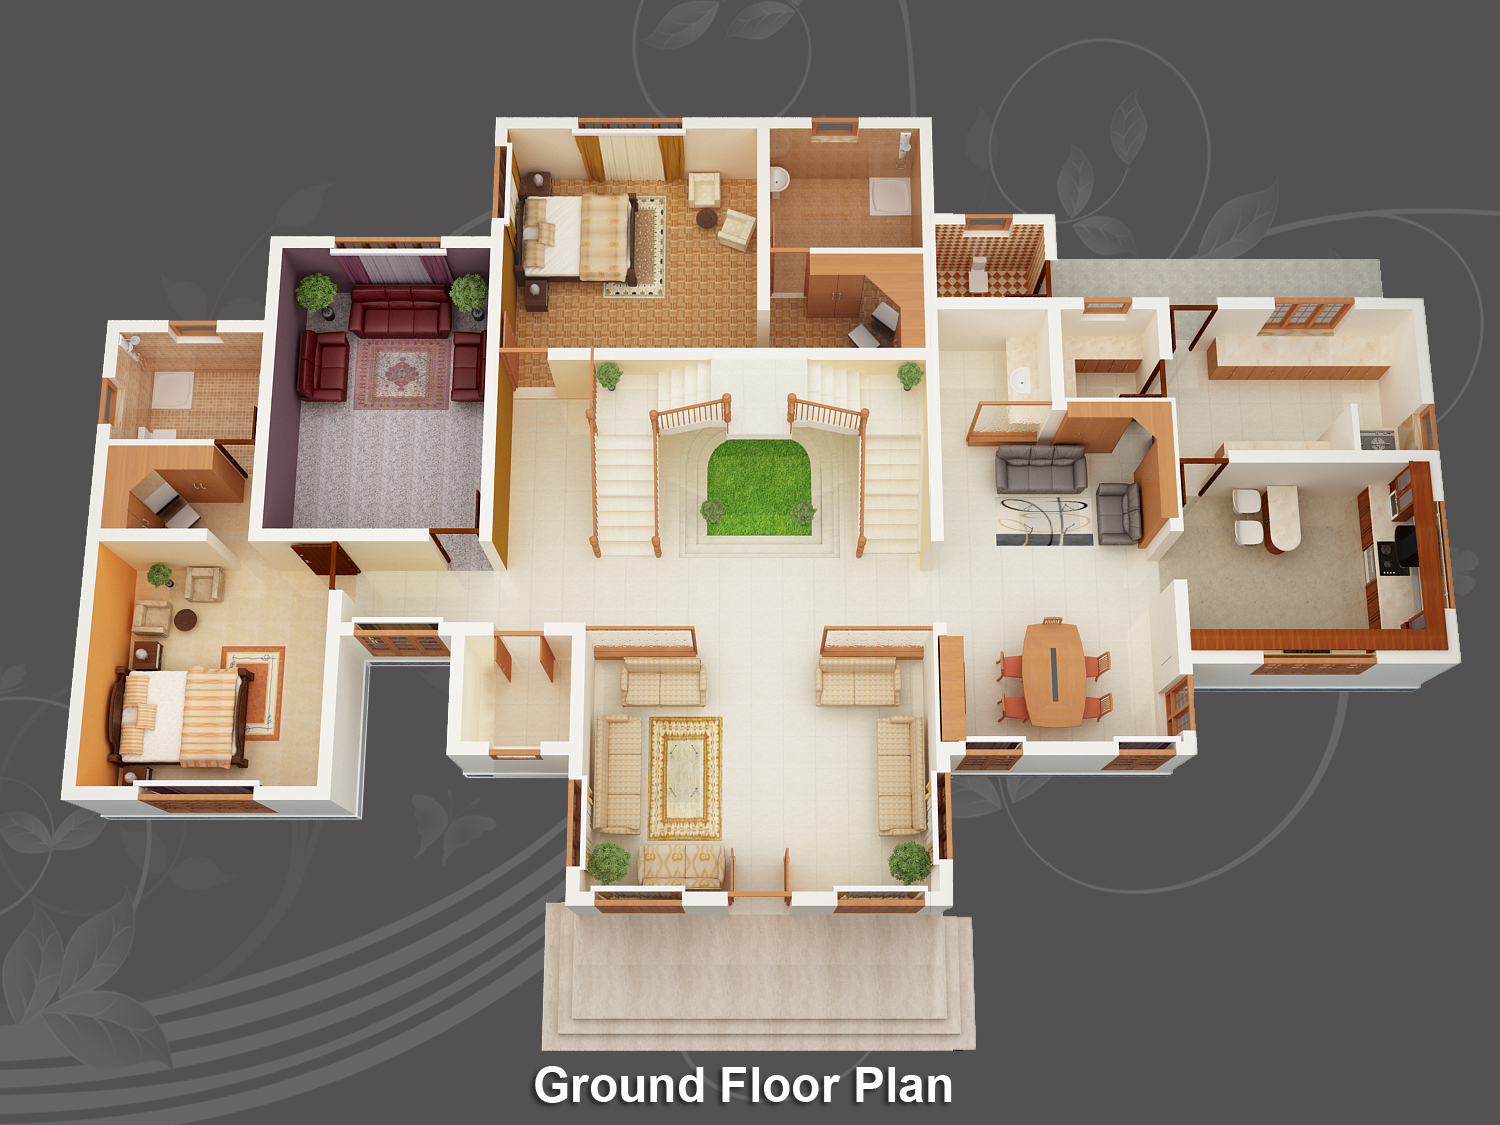 Evens construction pvt ltd 3d house plan 20 05 2011 for 3 bedroom house plan design 3d